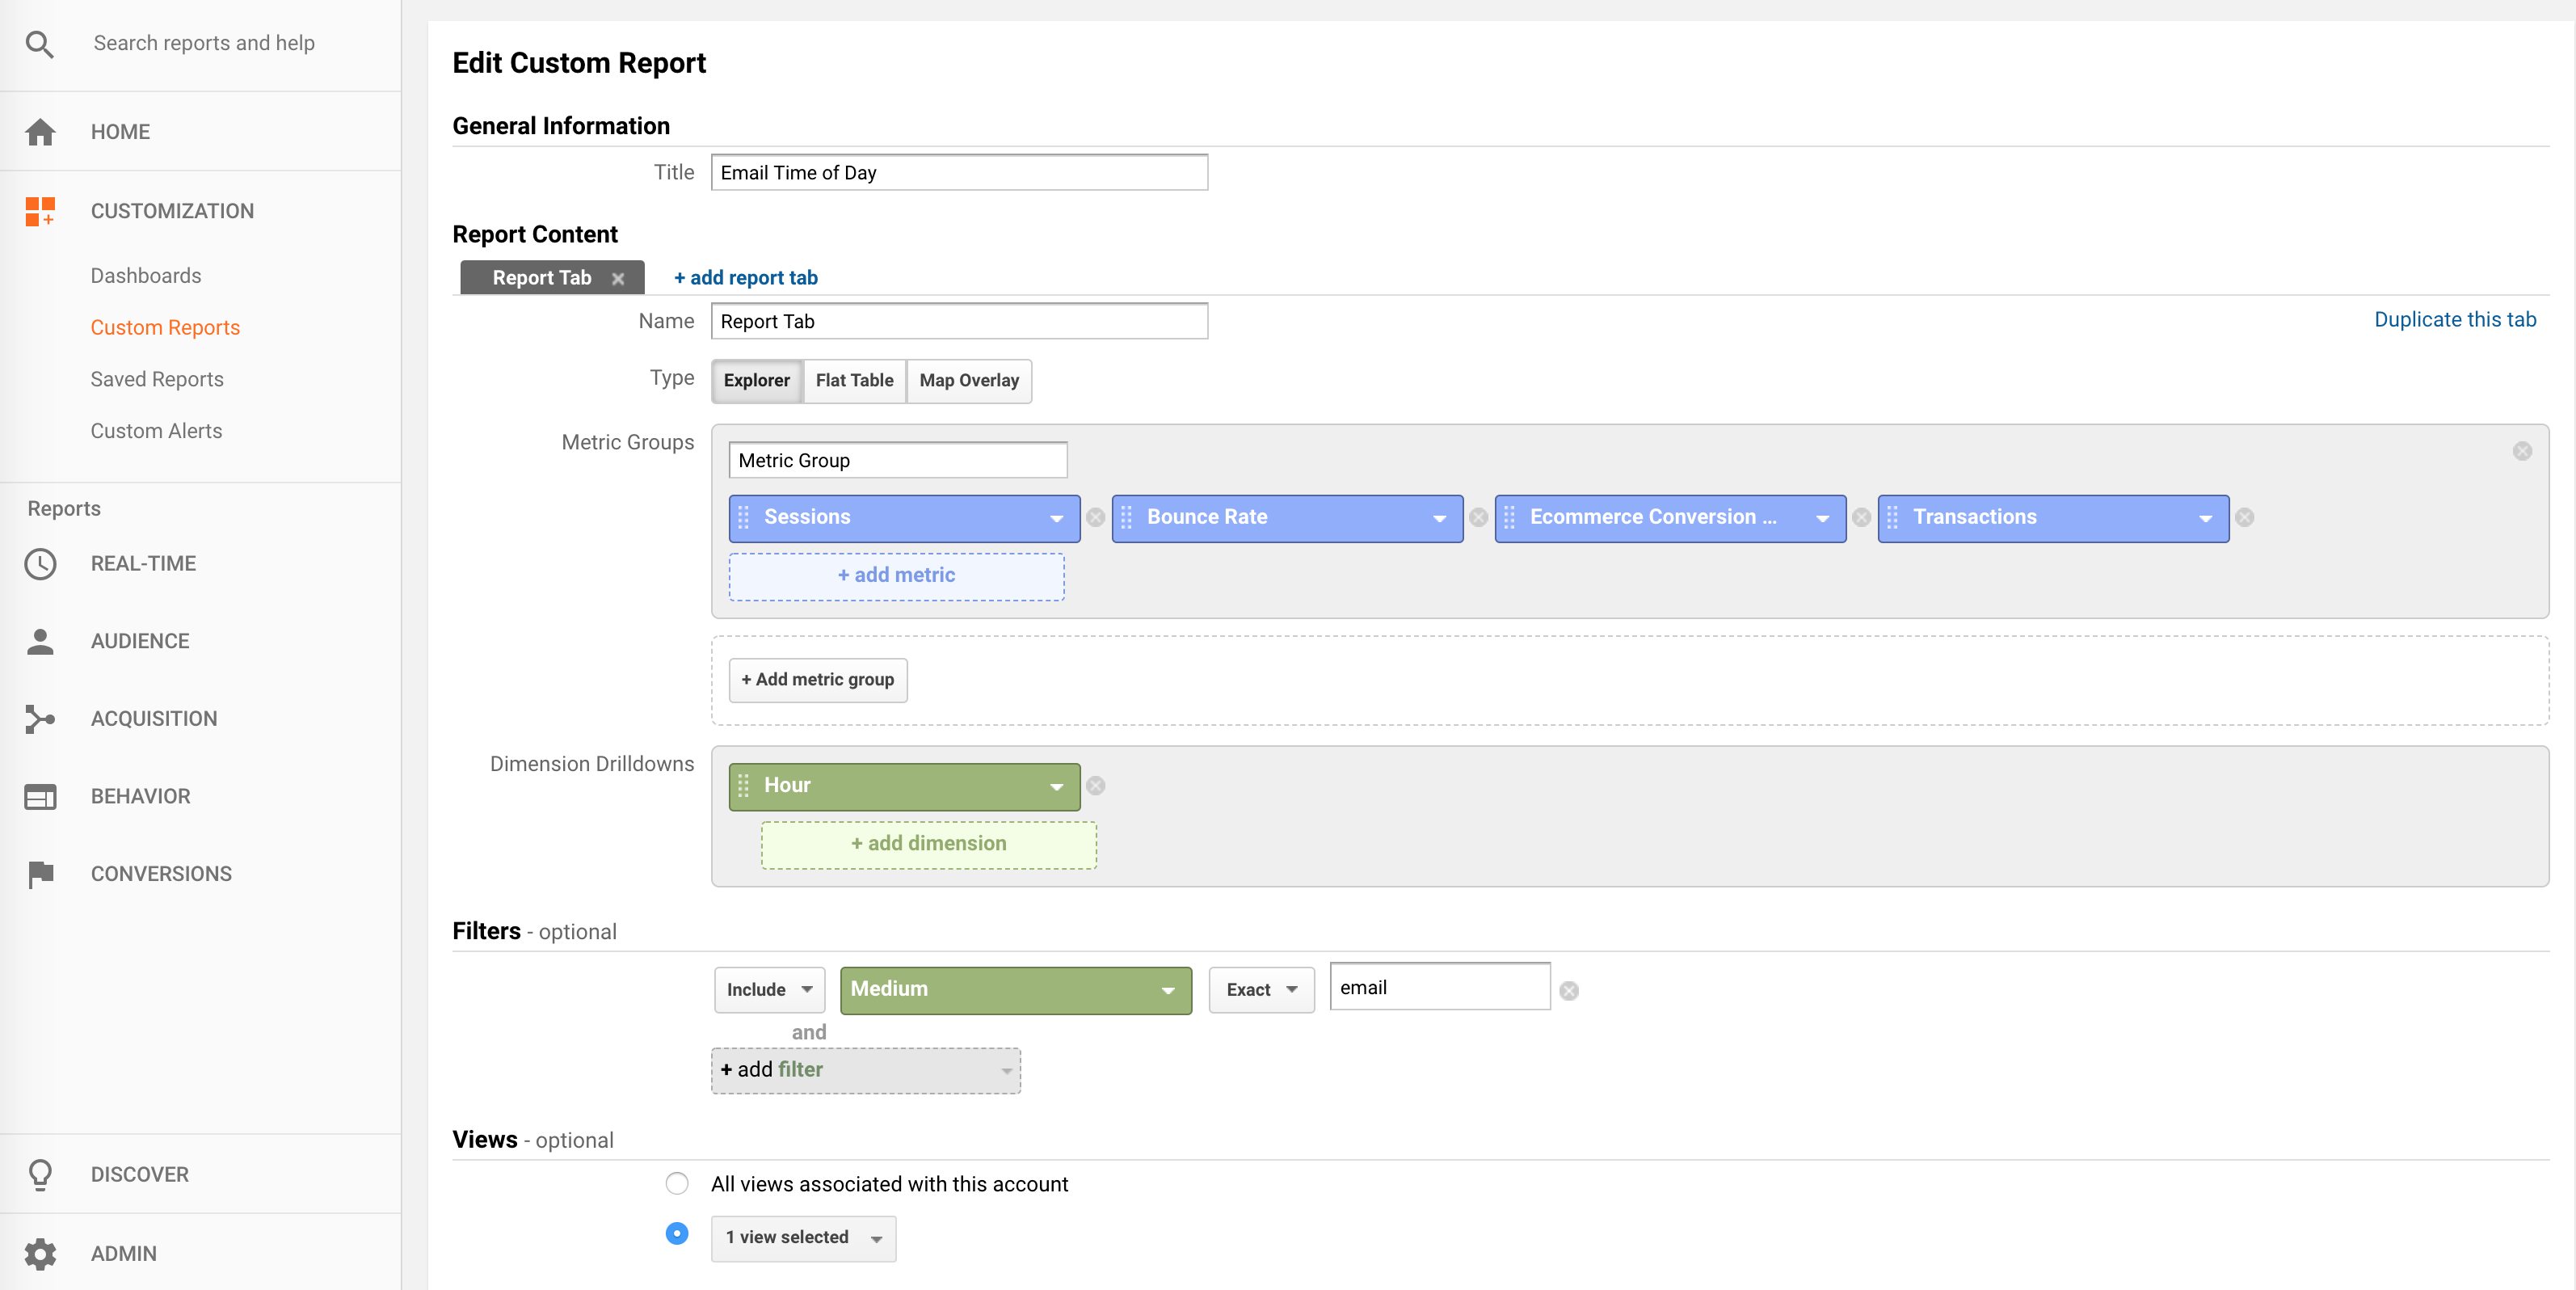 google analytics custom report creation for email time of day